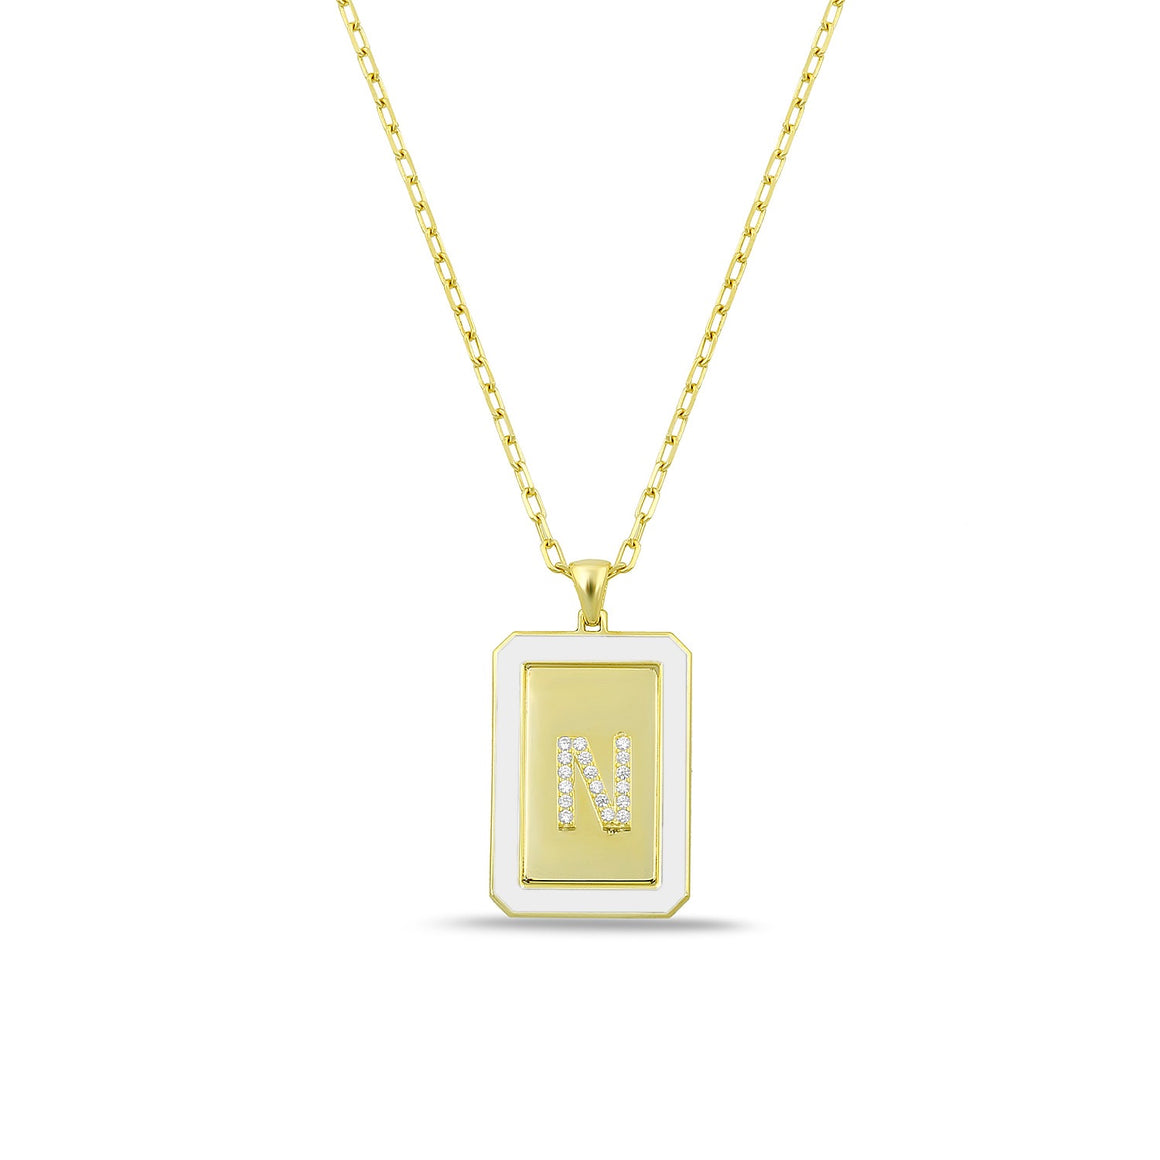 Personalized initial pendant with white enamel